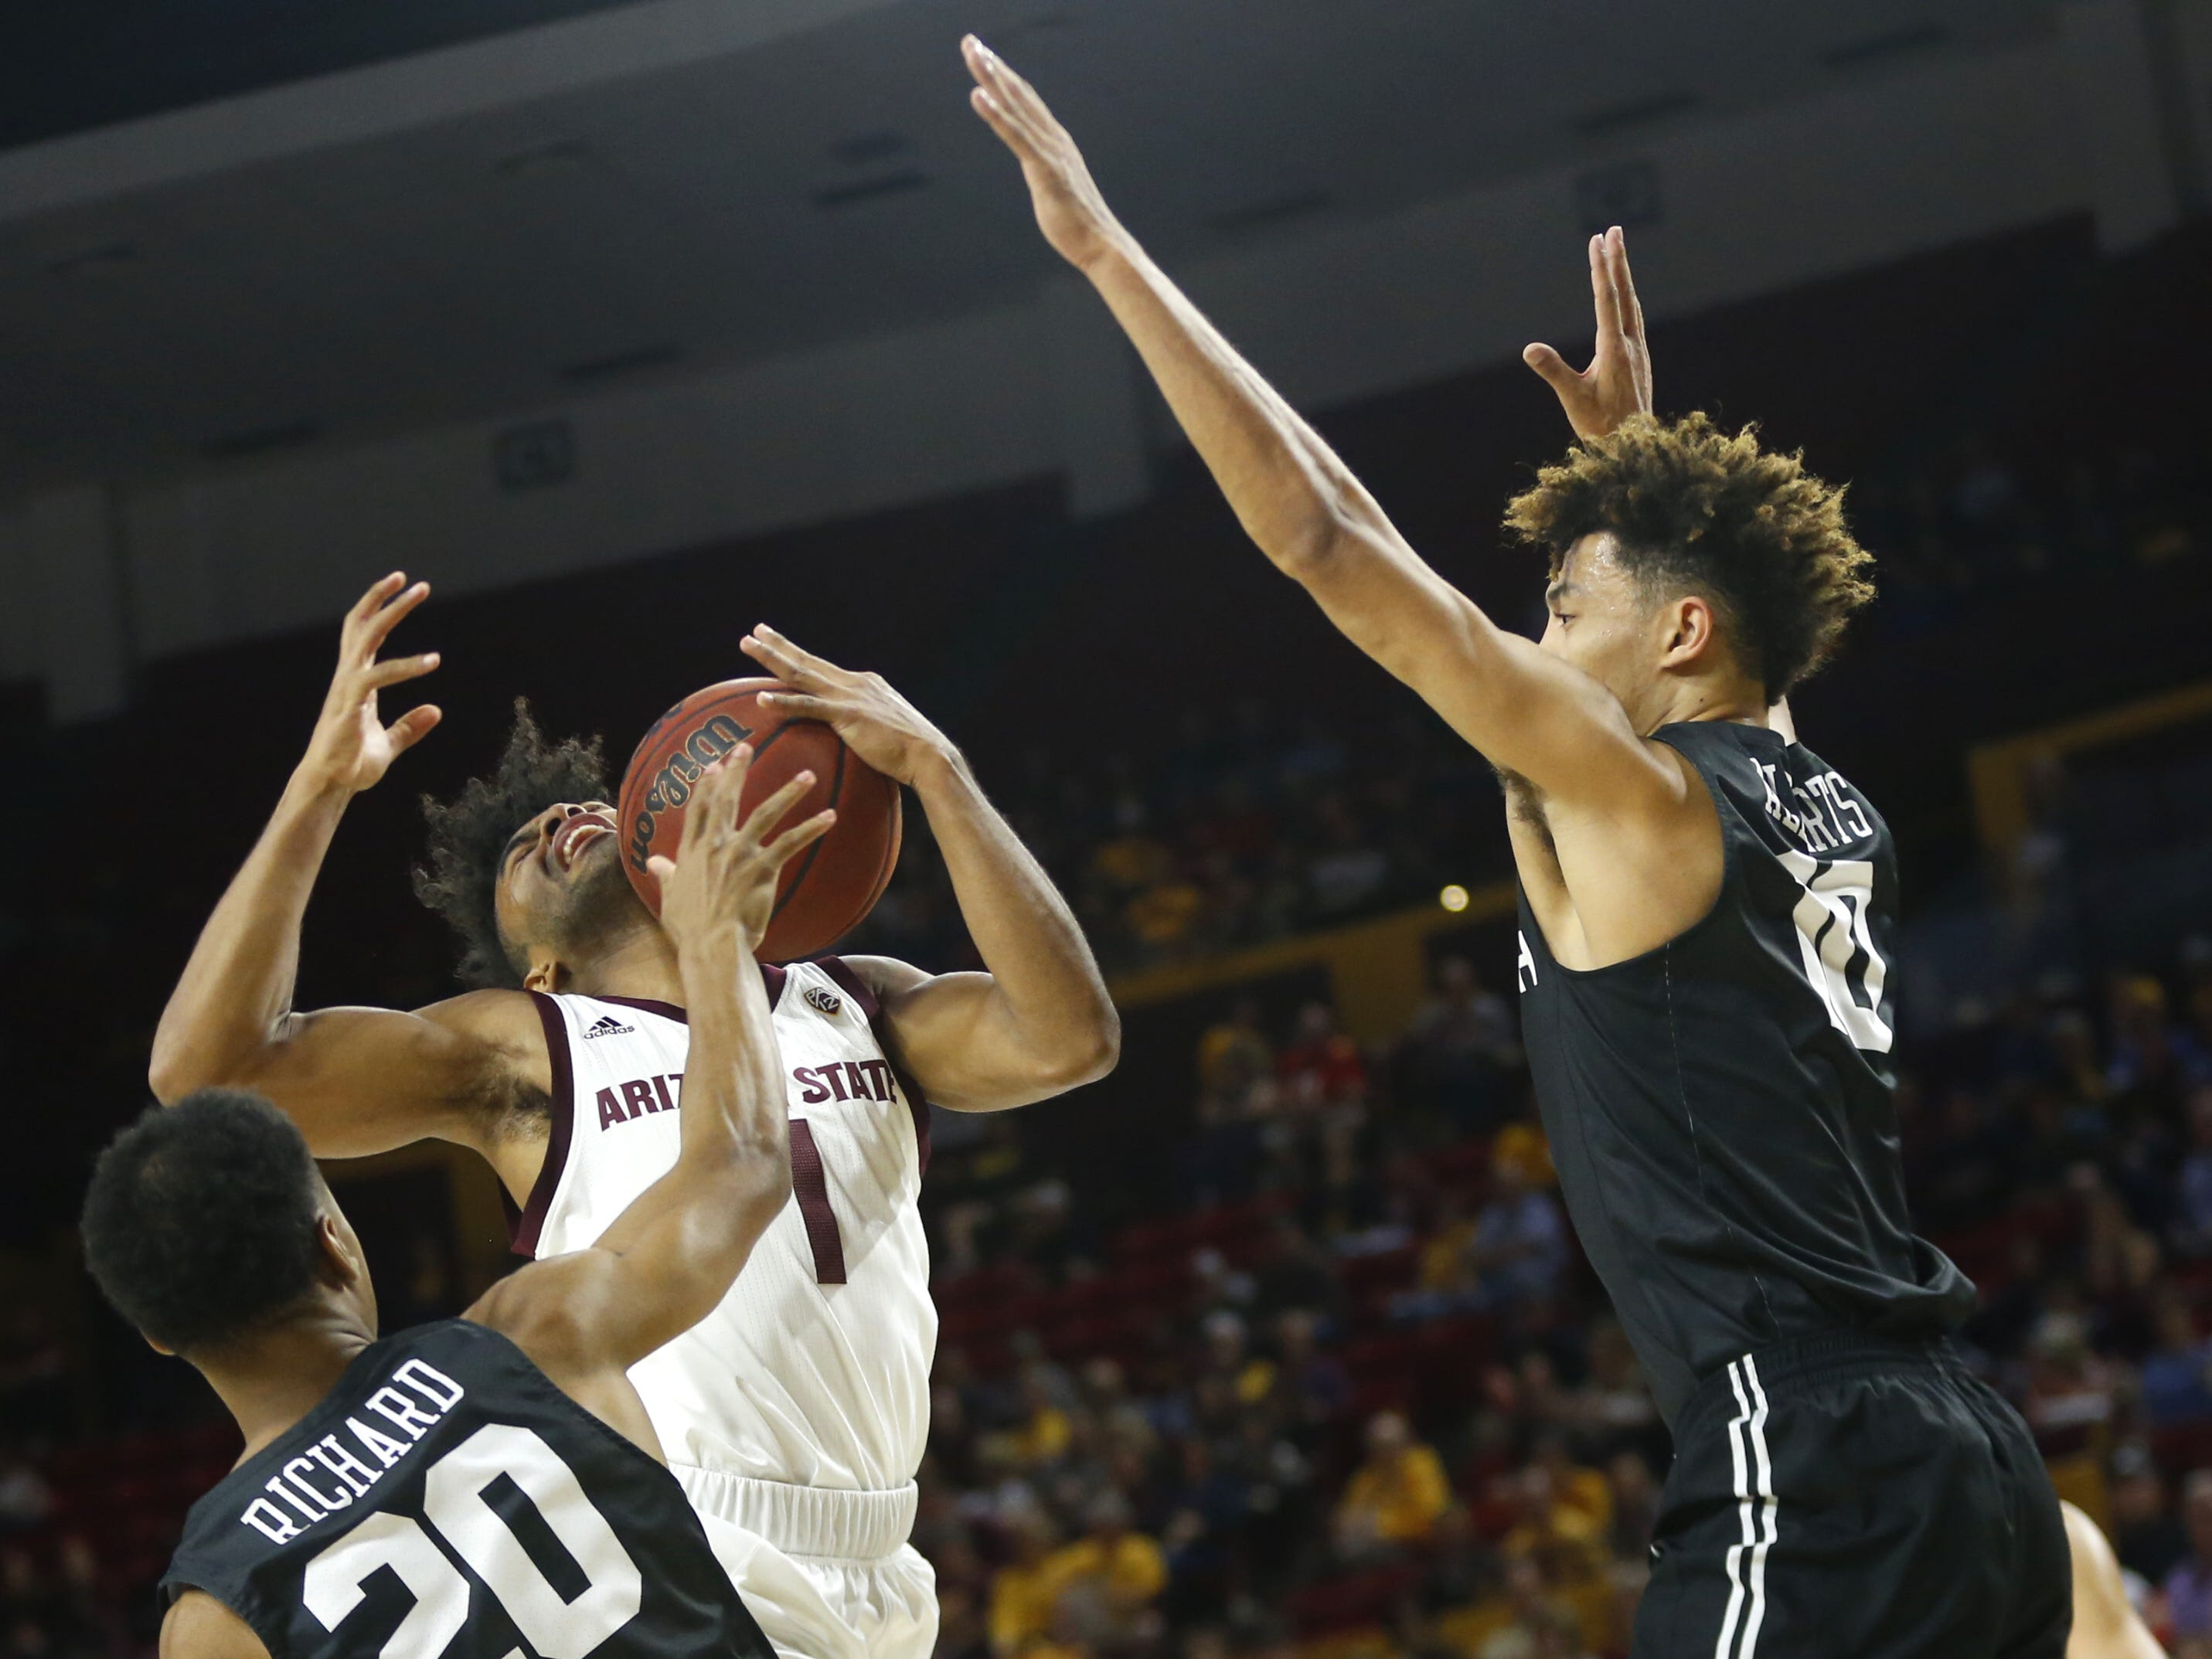 Arizona State's Remy Martin (1) draws a shooting foul on Long Beach State's Breamon Richard (20) during the first half at Wells Fargo Arena in Tempe, Ariz. on November 12, 2018.